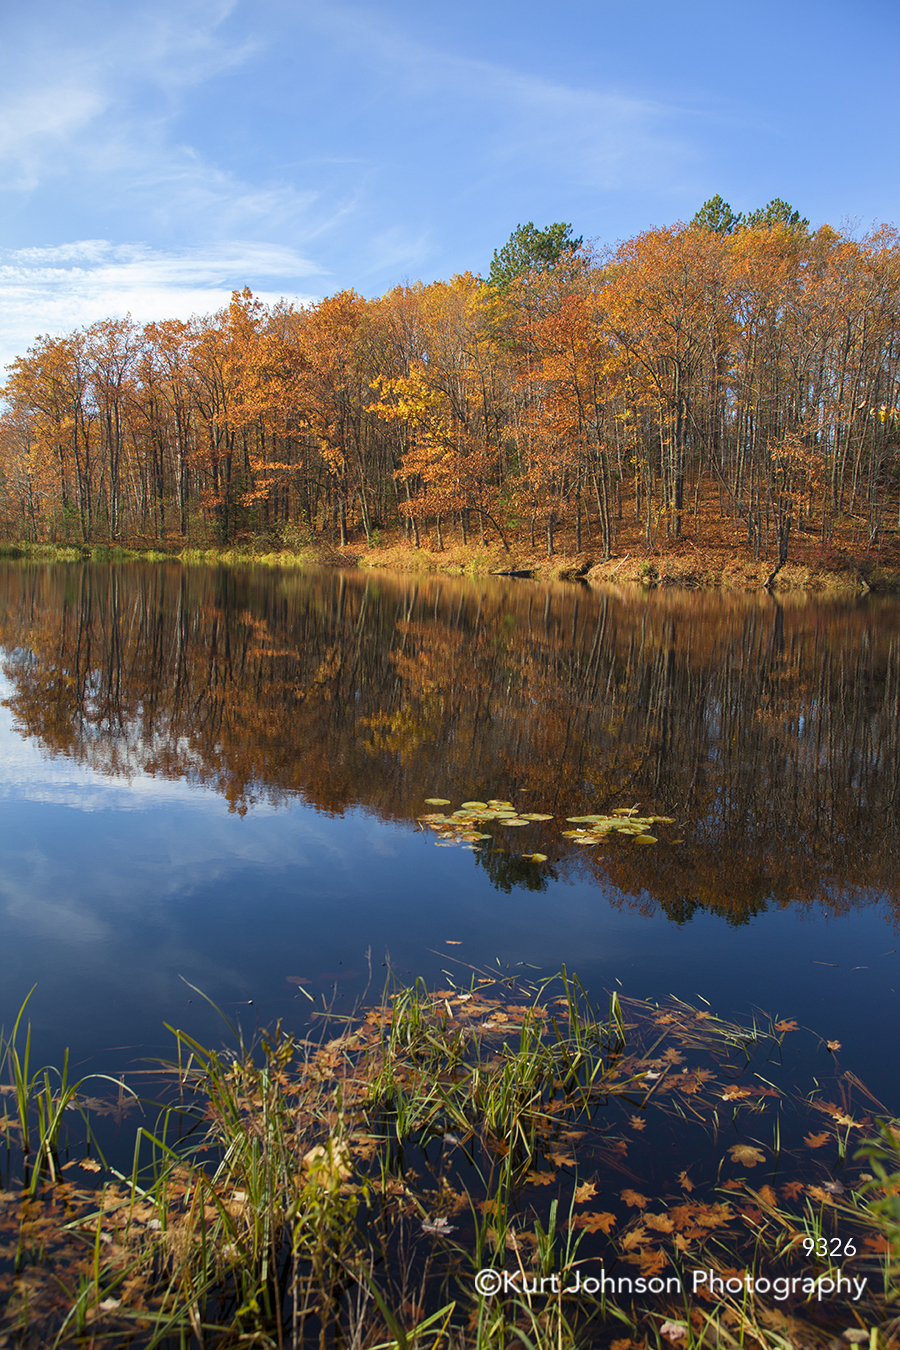 orange yellow autumn fall trees blue water reflection mirror sky clouds landscape waterscape